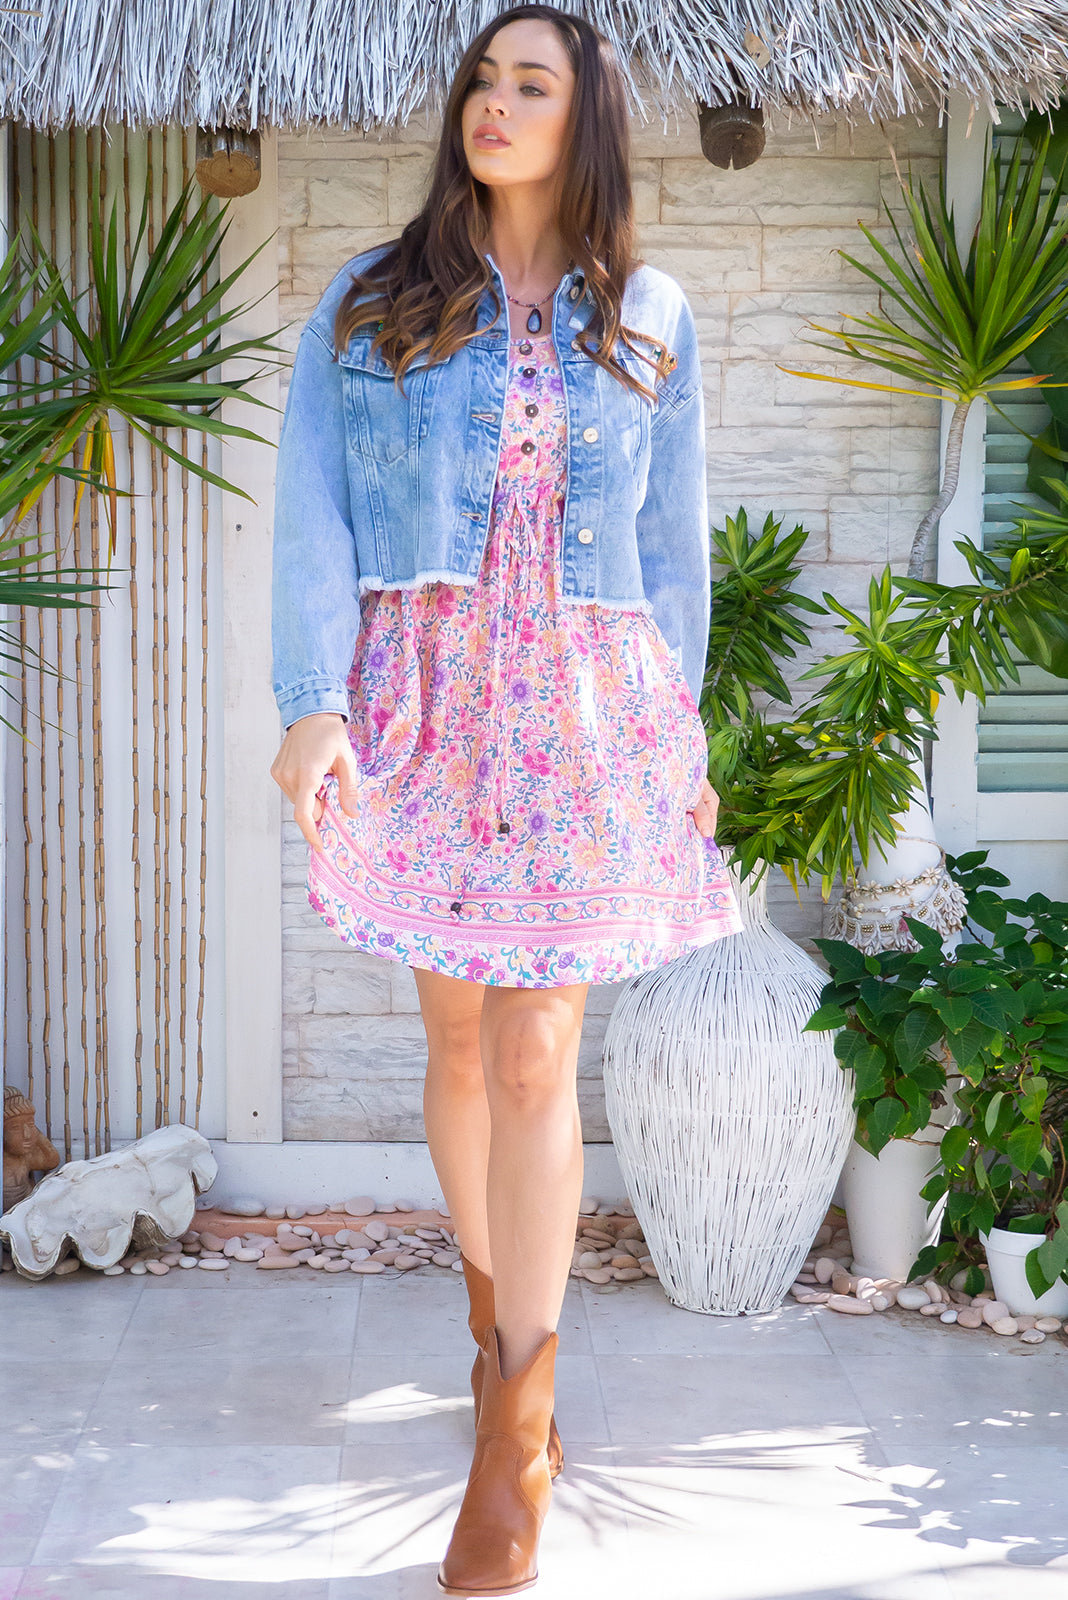 Juniper Fairy Floss Pink Mini Dress, bohemian summers style, 100% viscose, functional button down chest to waistline, side pockets, adjustable drawstring waist, pastel pink base with medium fuchsia, gold, purple and teal floral print.